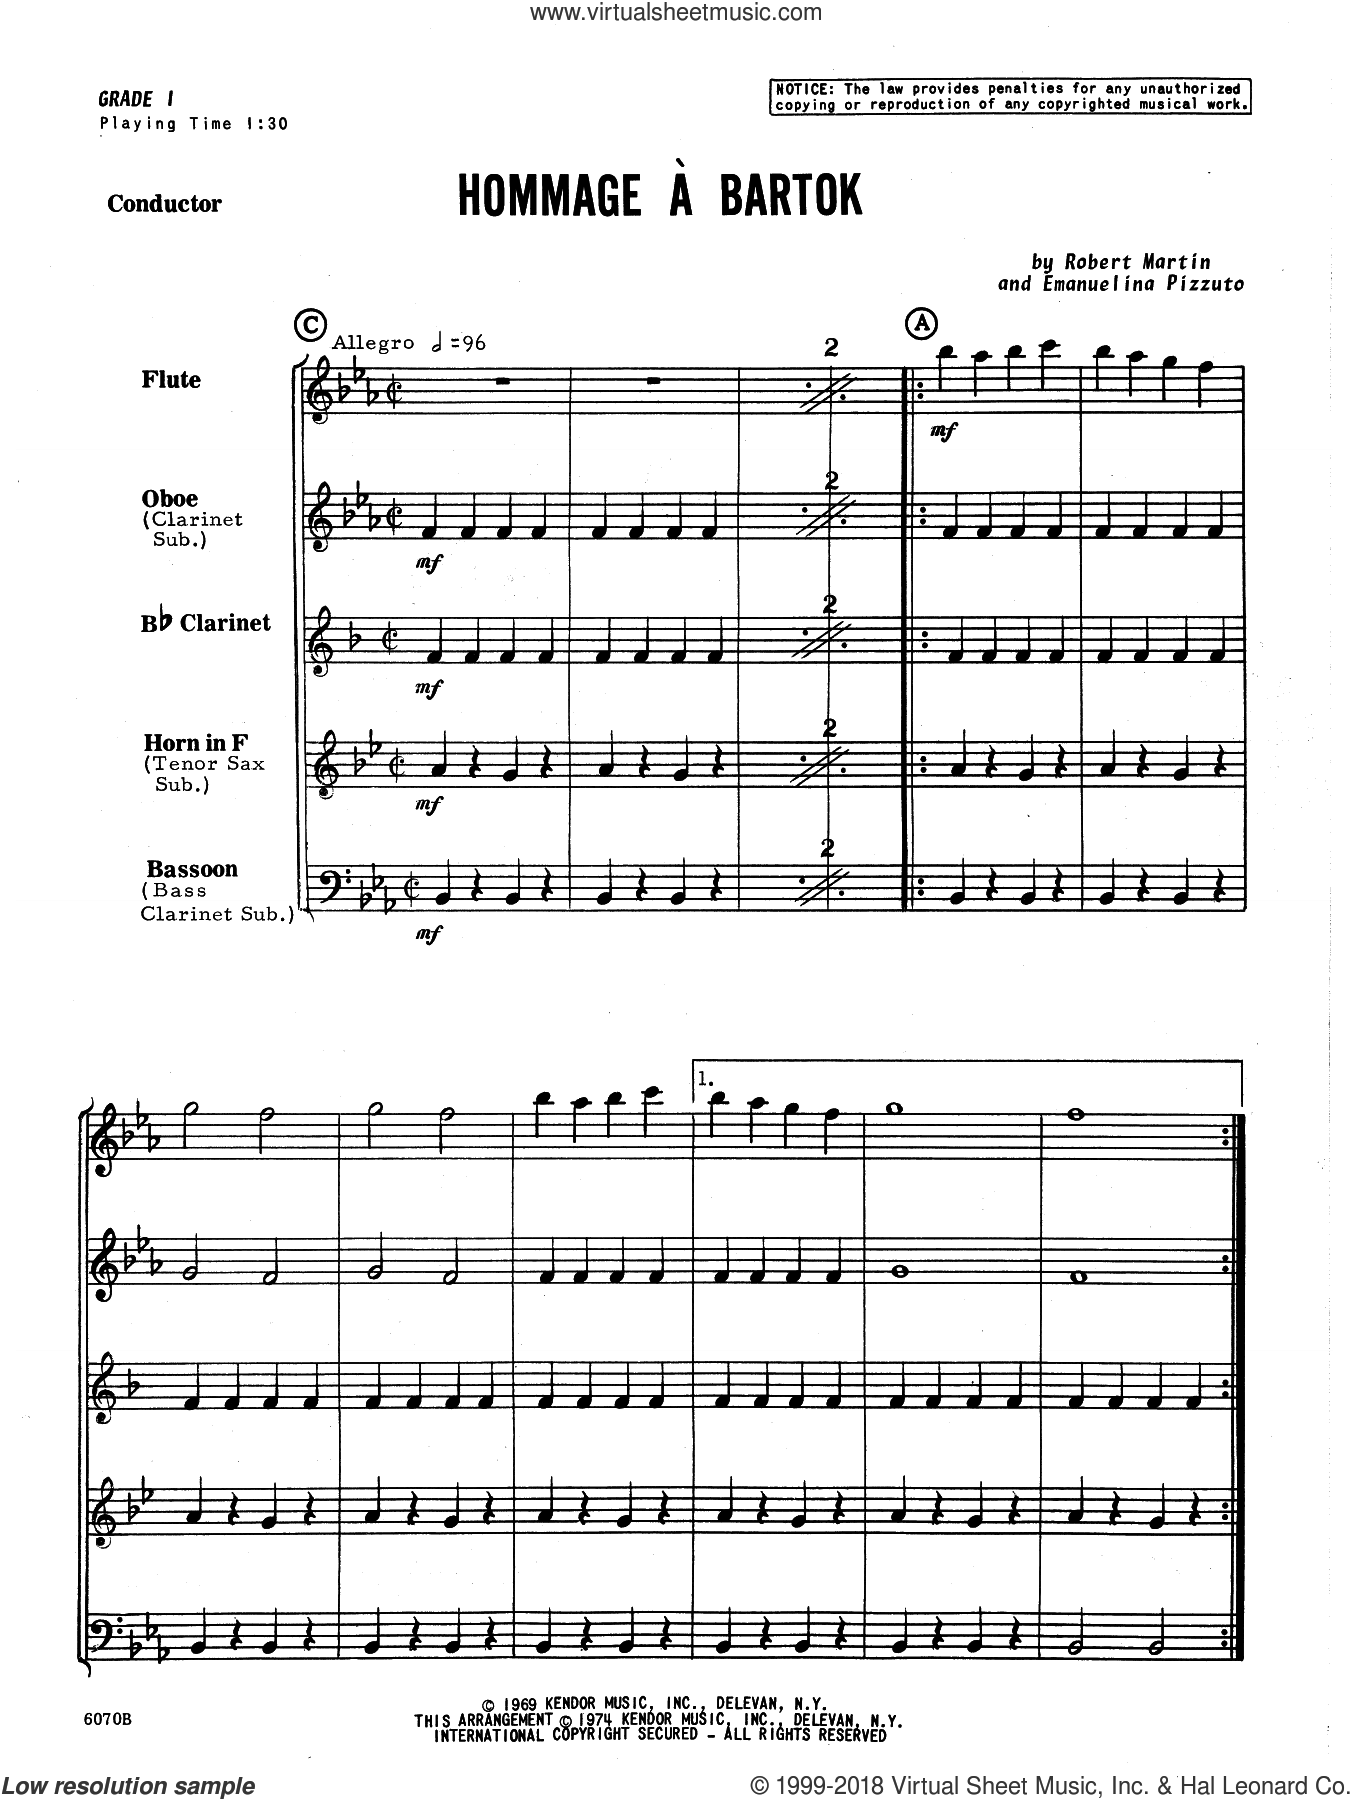 Hommage A Bartok (COMPLETE) sheet music for wind quintet by Martin and Pizzuto, classical score, intermediate skill level